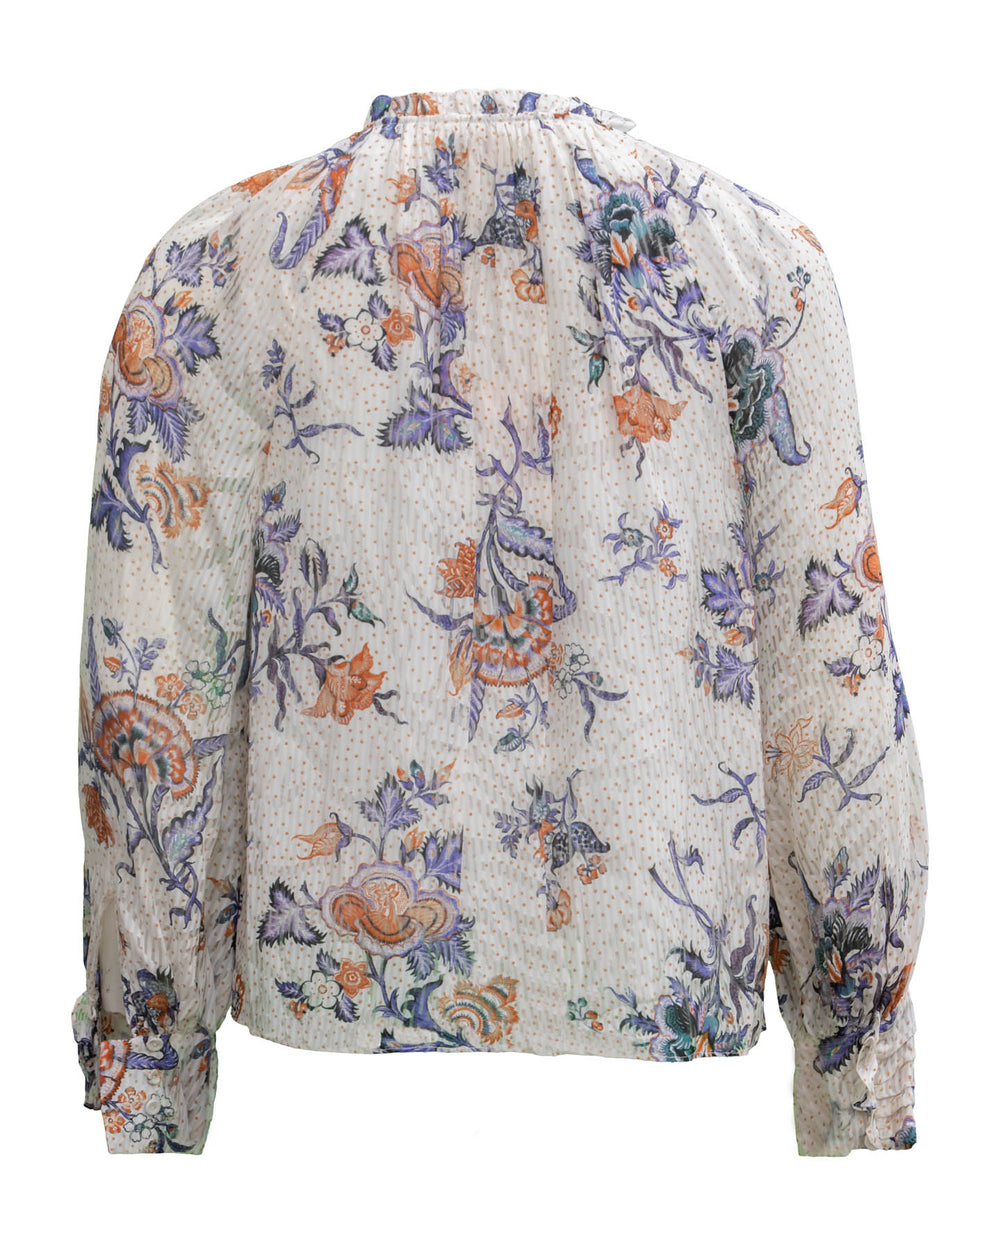 Toile Floral Print  Top